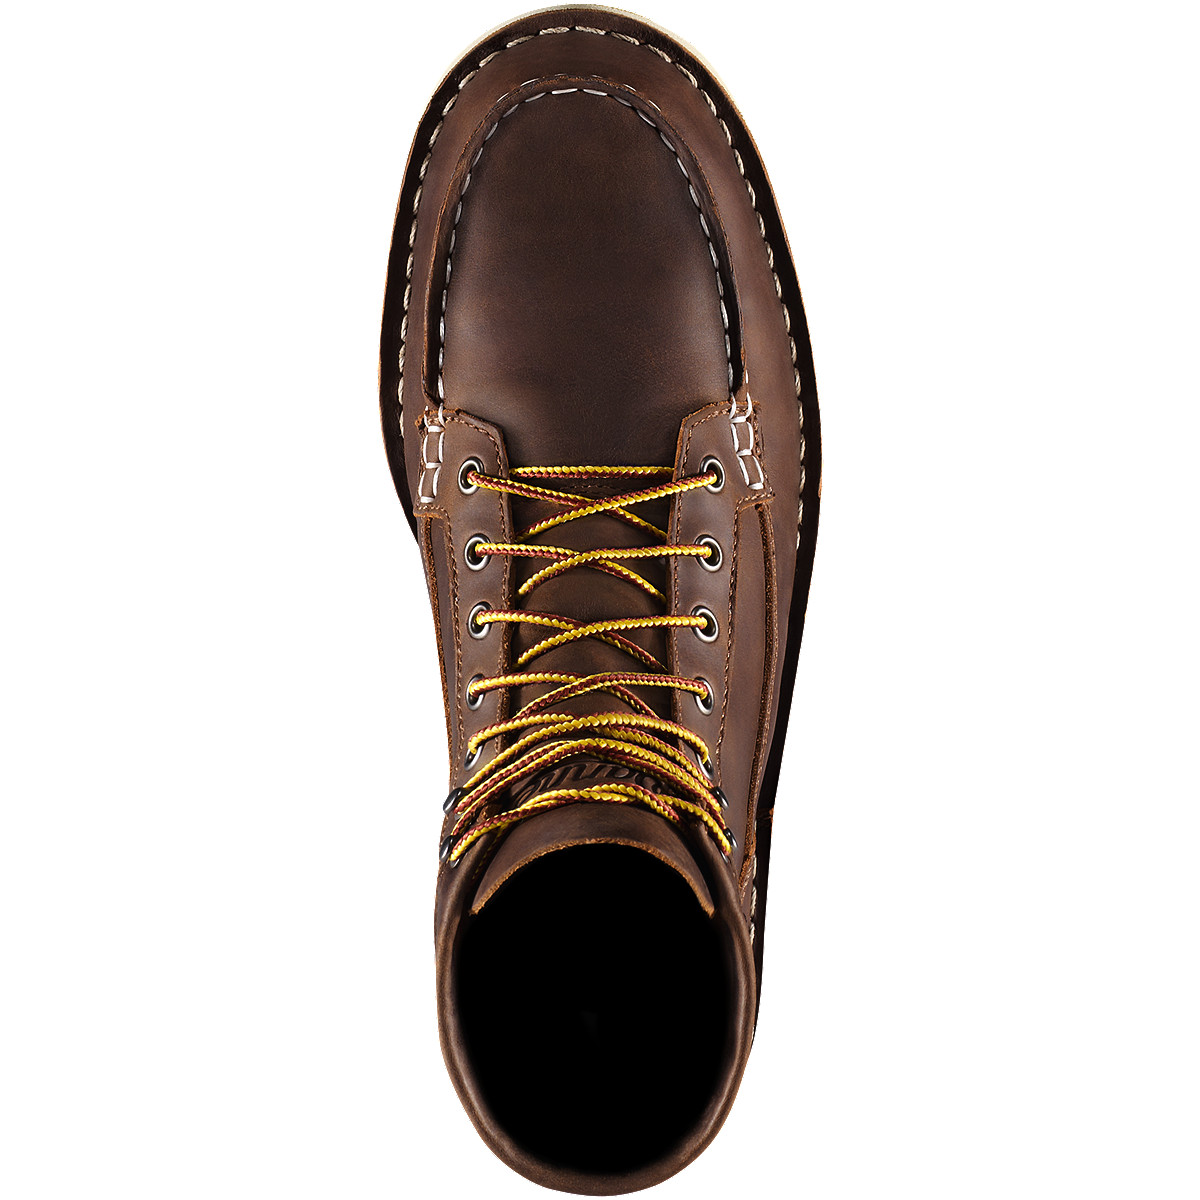 805c0a9c581154 Electrical hazard (EH) footwear is manufactured with non-conductive  electrical shock resistant soles and heels